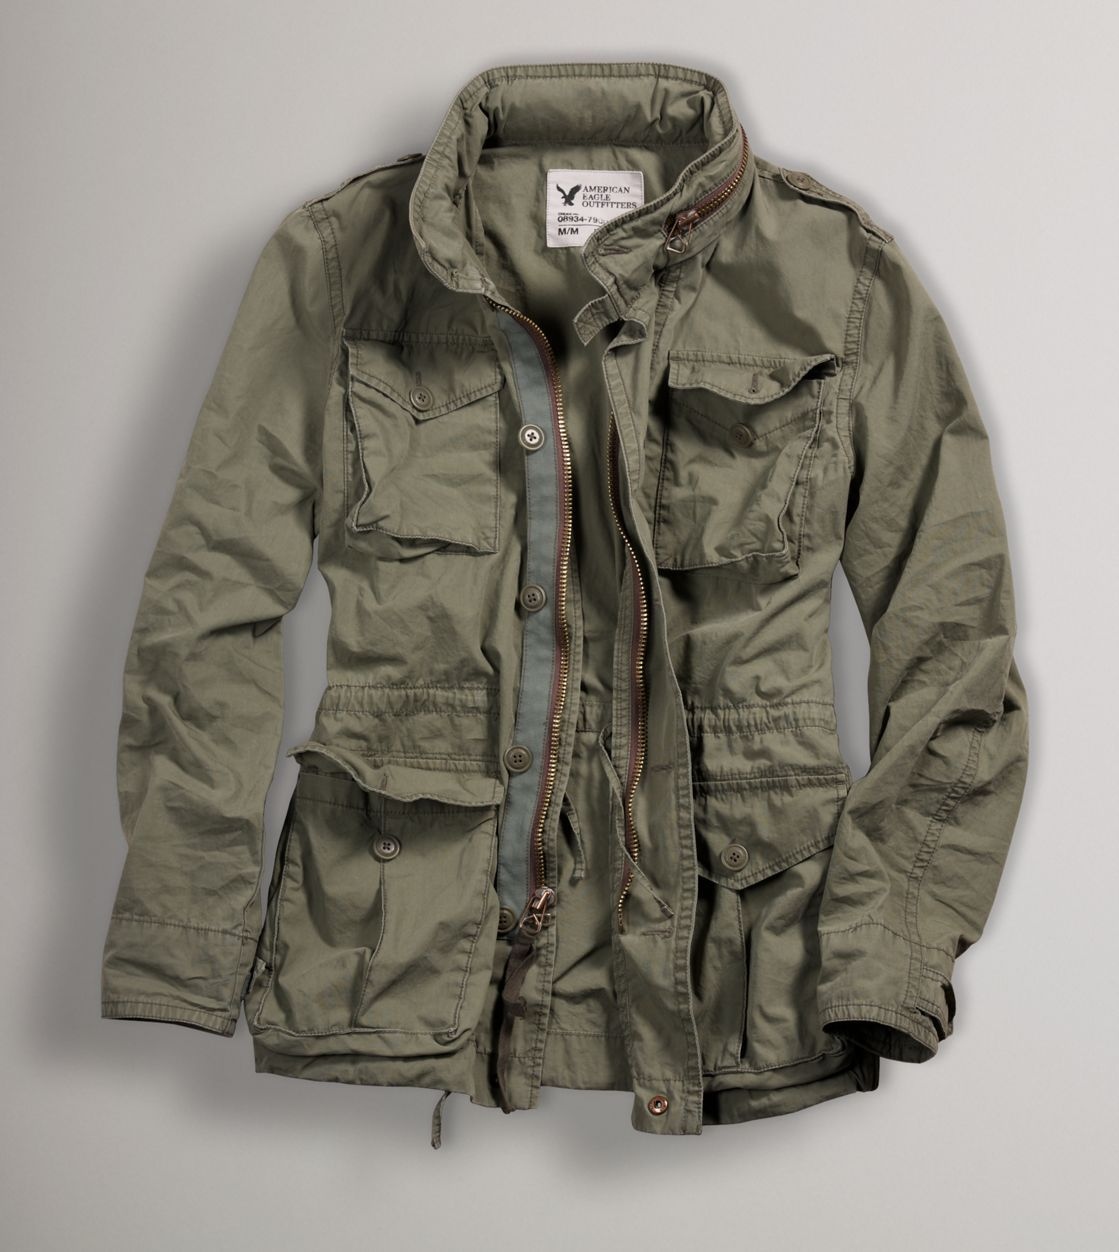 ae military jacket outerwear pinterest jackets military